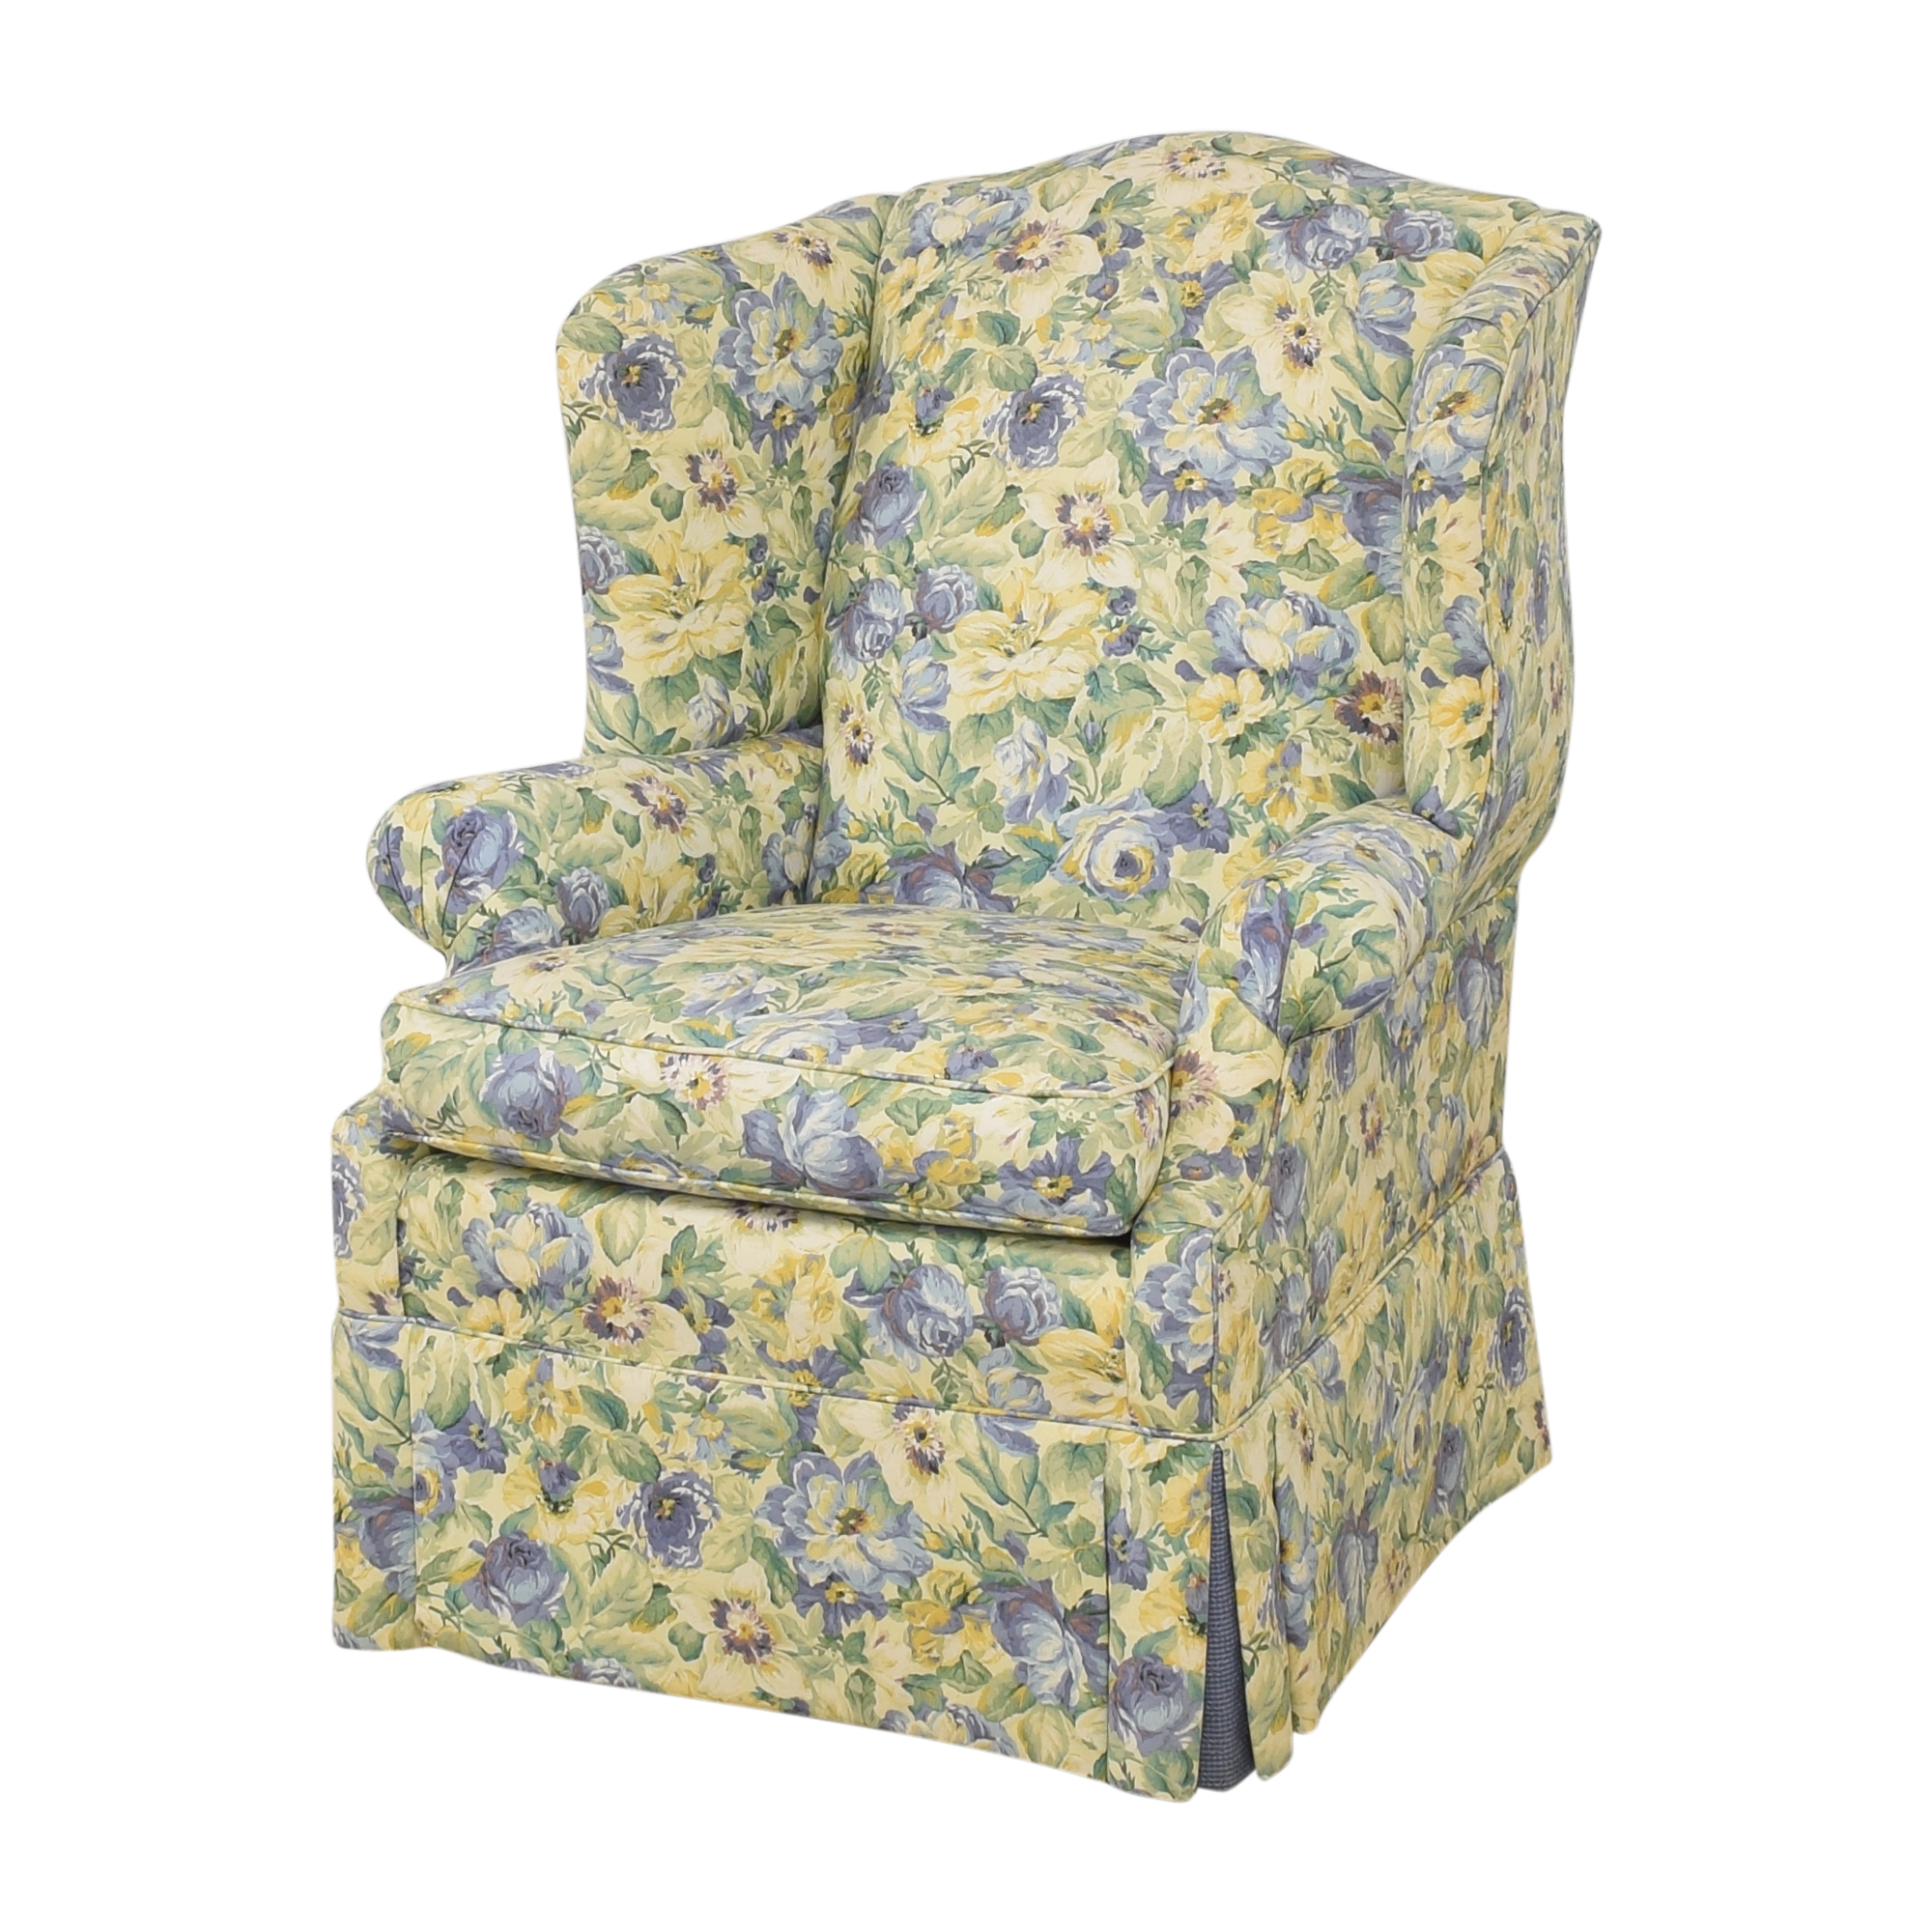 Ethan Allen Ethan Allen Skirted Wing Chair dimensions